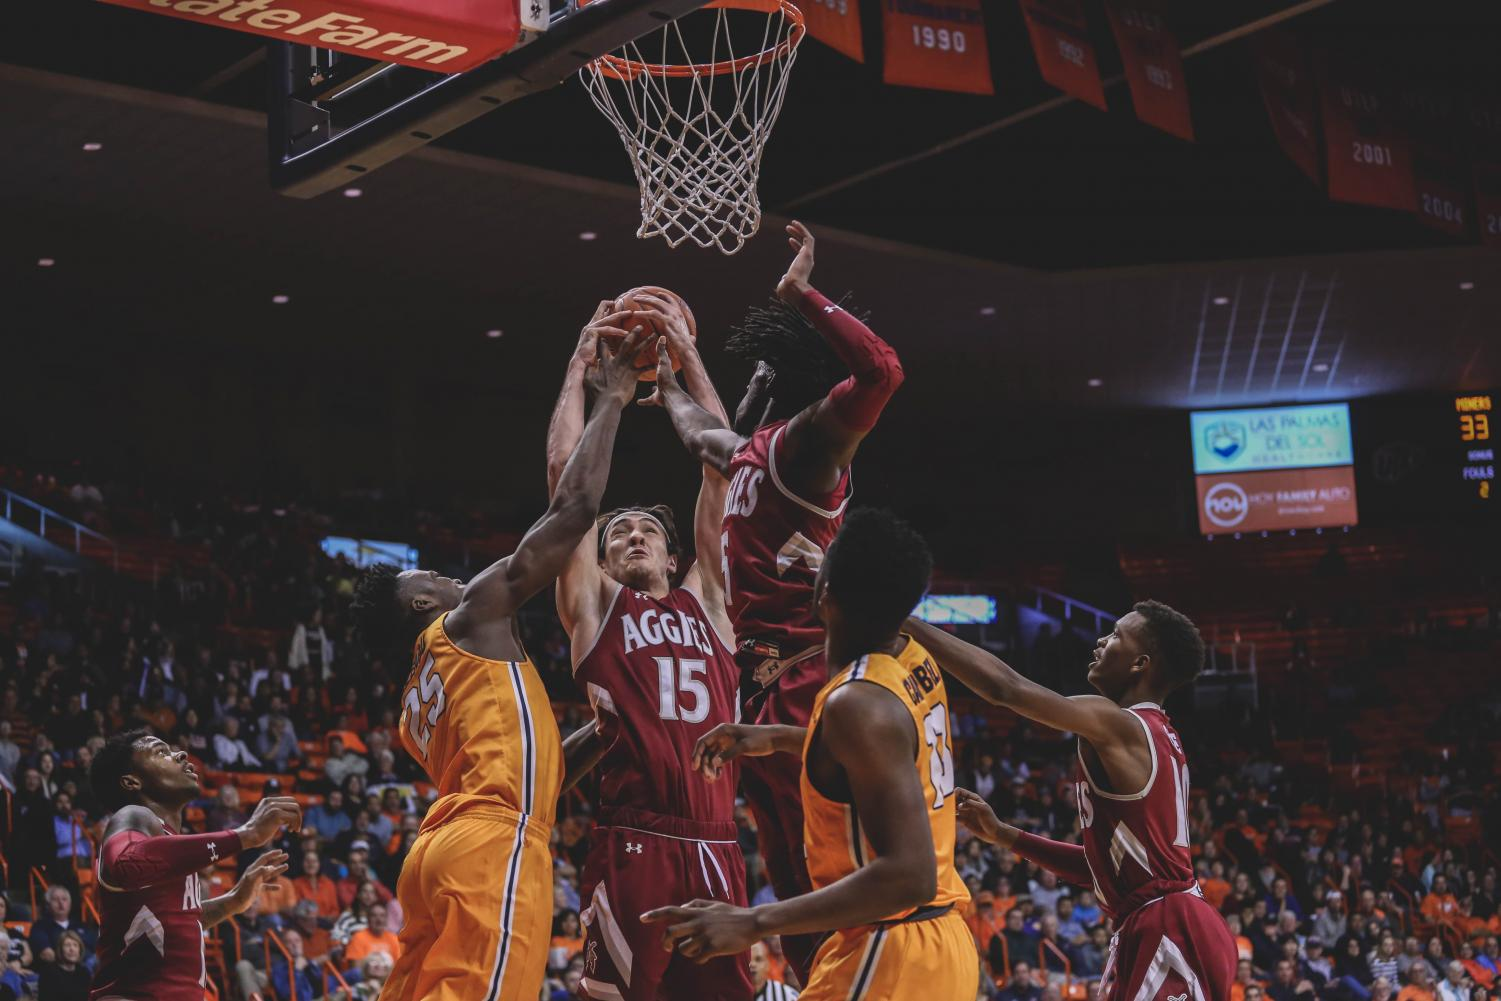 The+NMSU+Aggies+beat+the+Miners+at+the+battle+of+I-10+62-58+on+Wednesday%2C+Nov.+28+at+the+Don+Haskins+Center.+